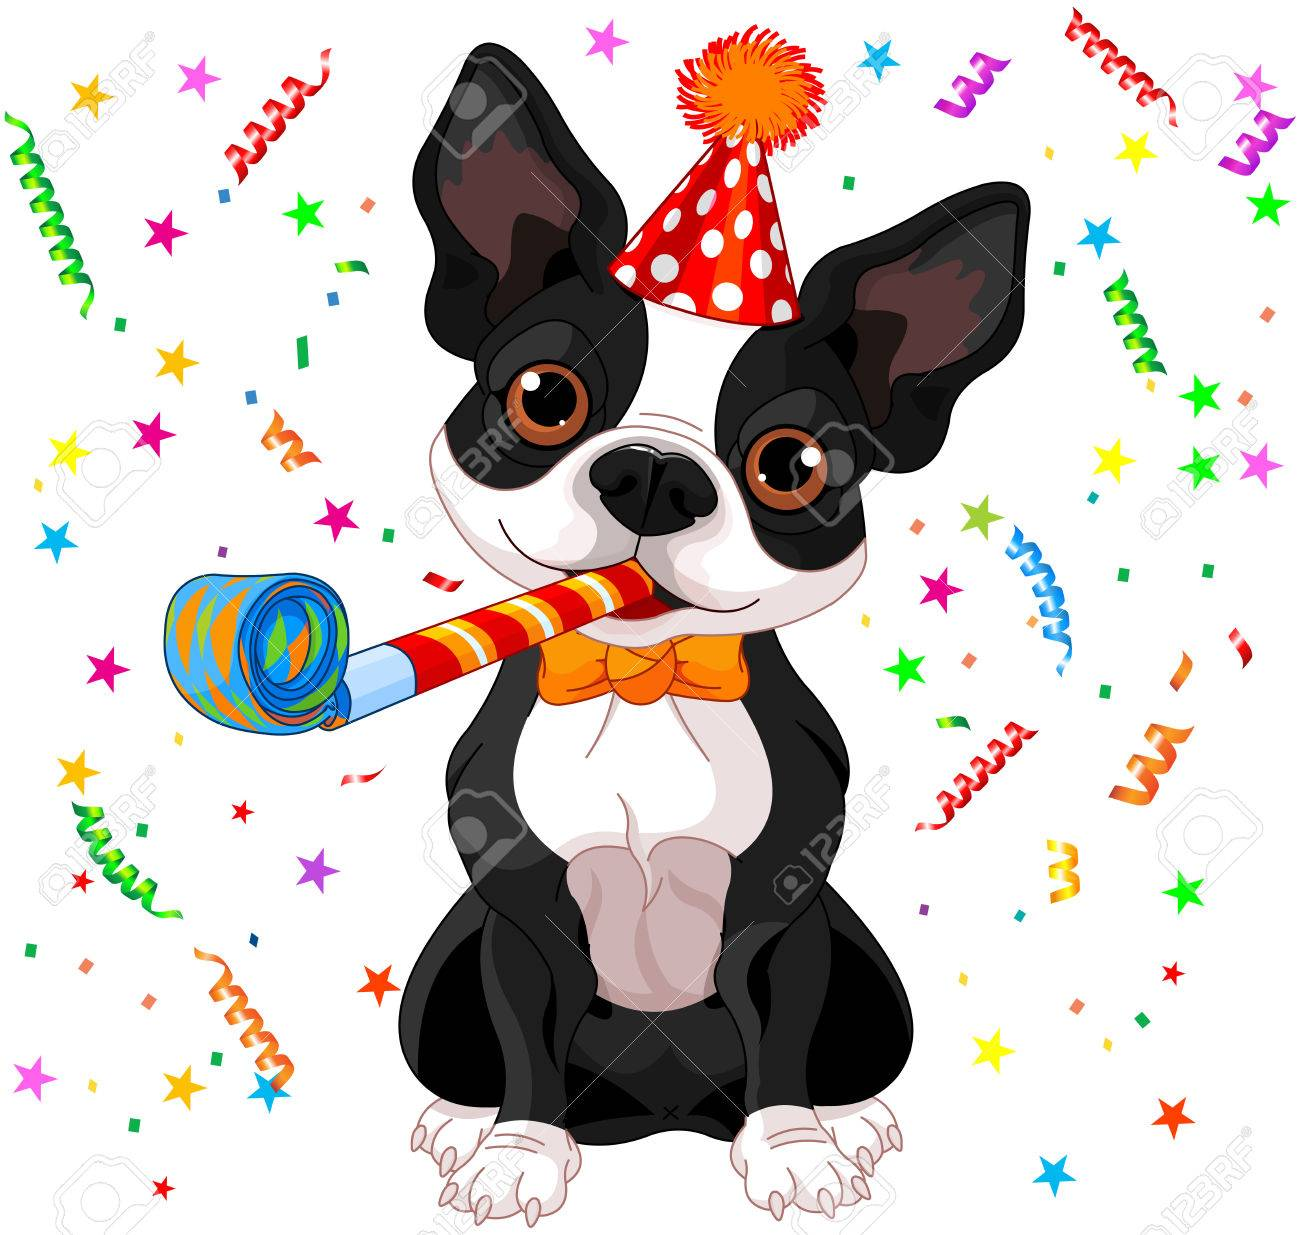 Divagation en campagne 35588778-illustration-of-cute-boston-terrier-celebrating